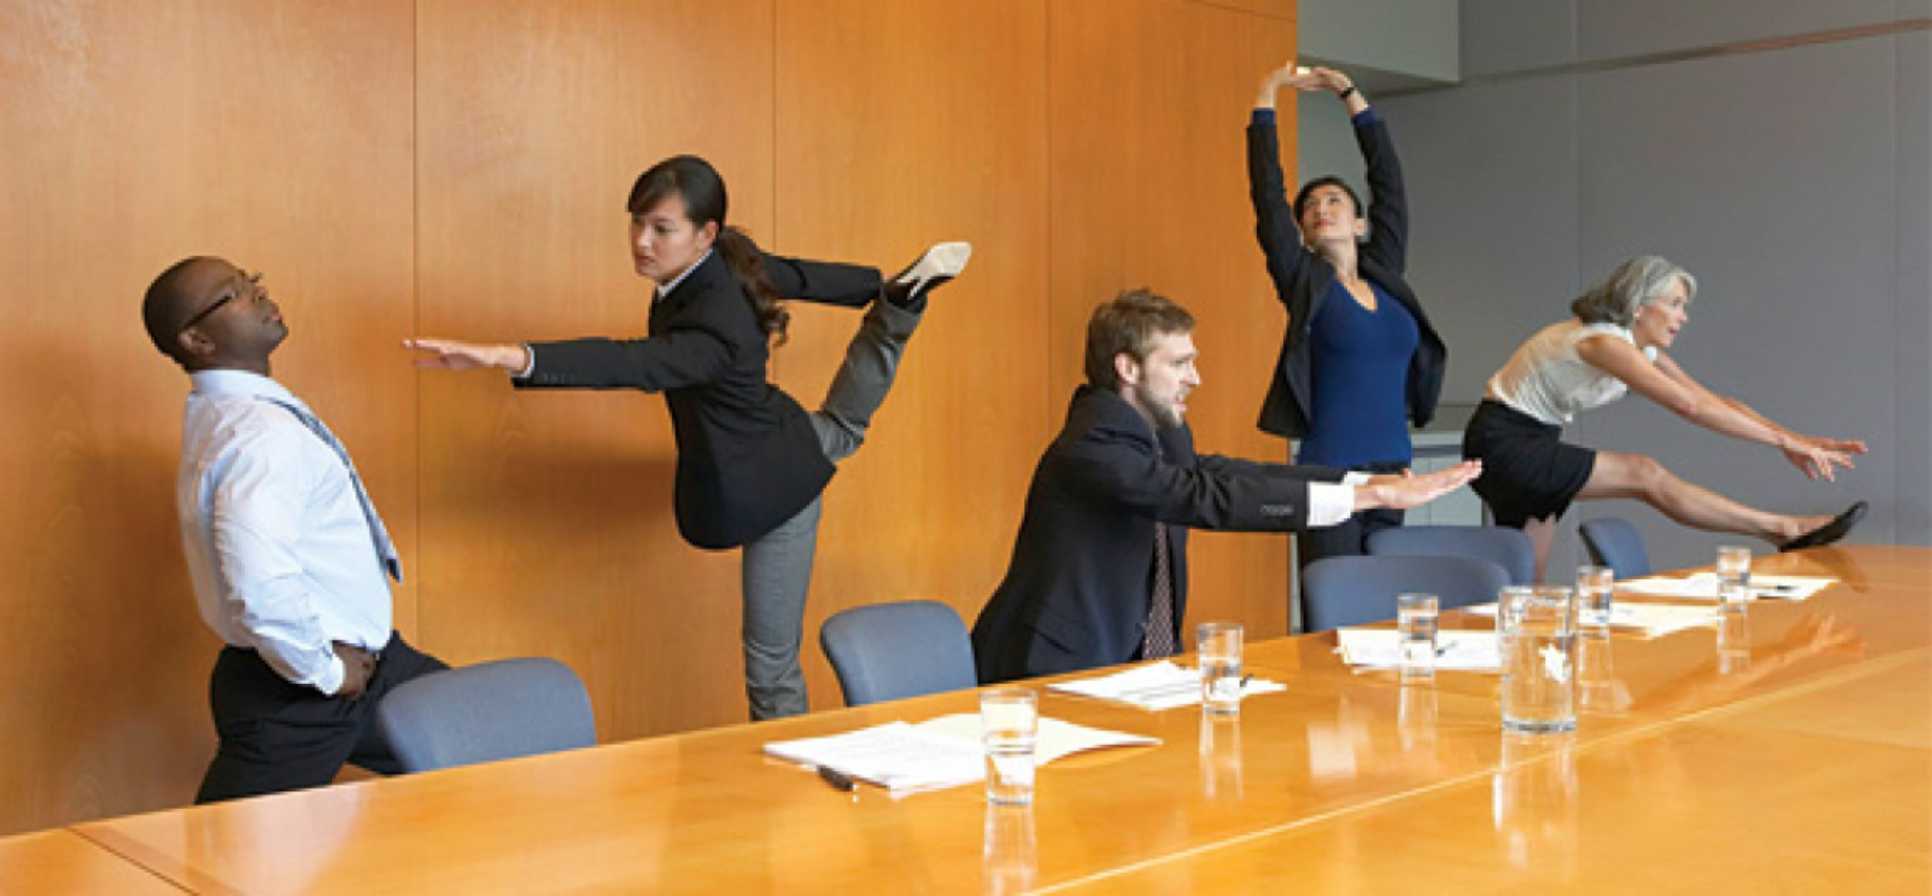 workplace health promotions reaching - HD1932×896